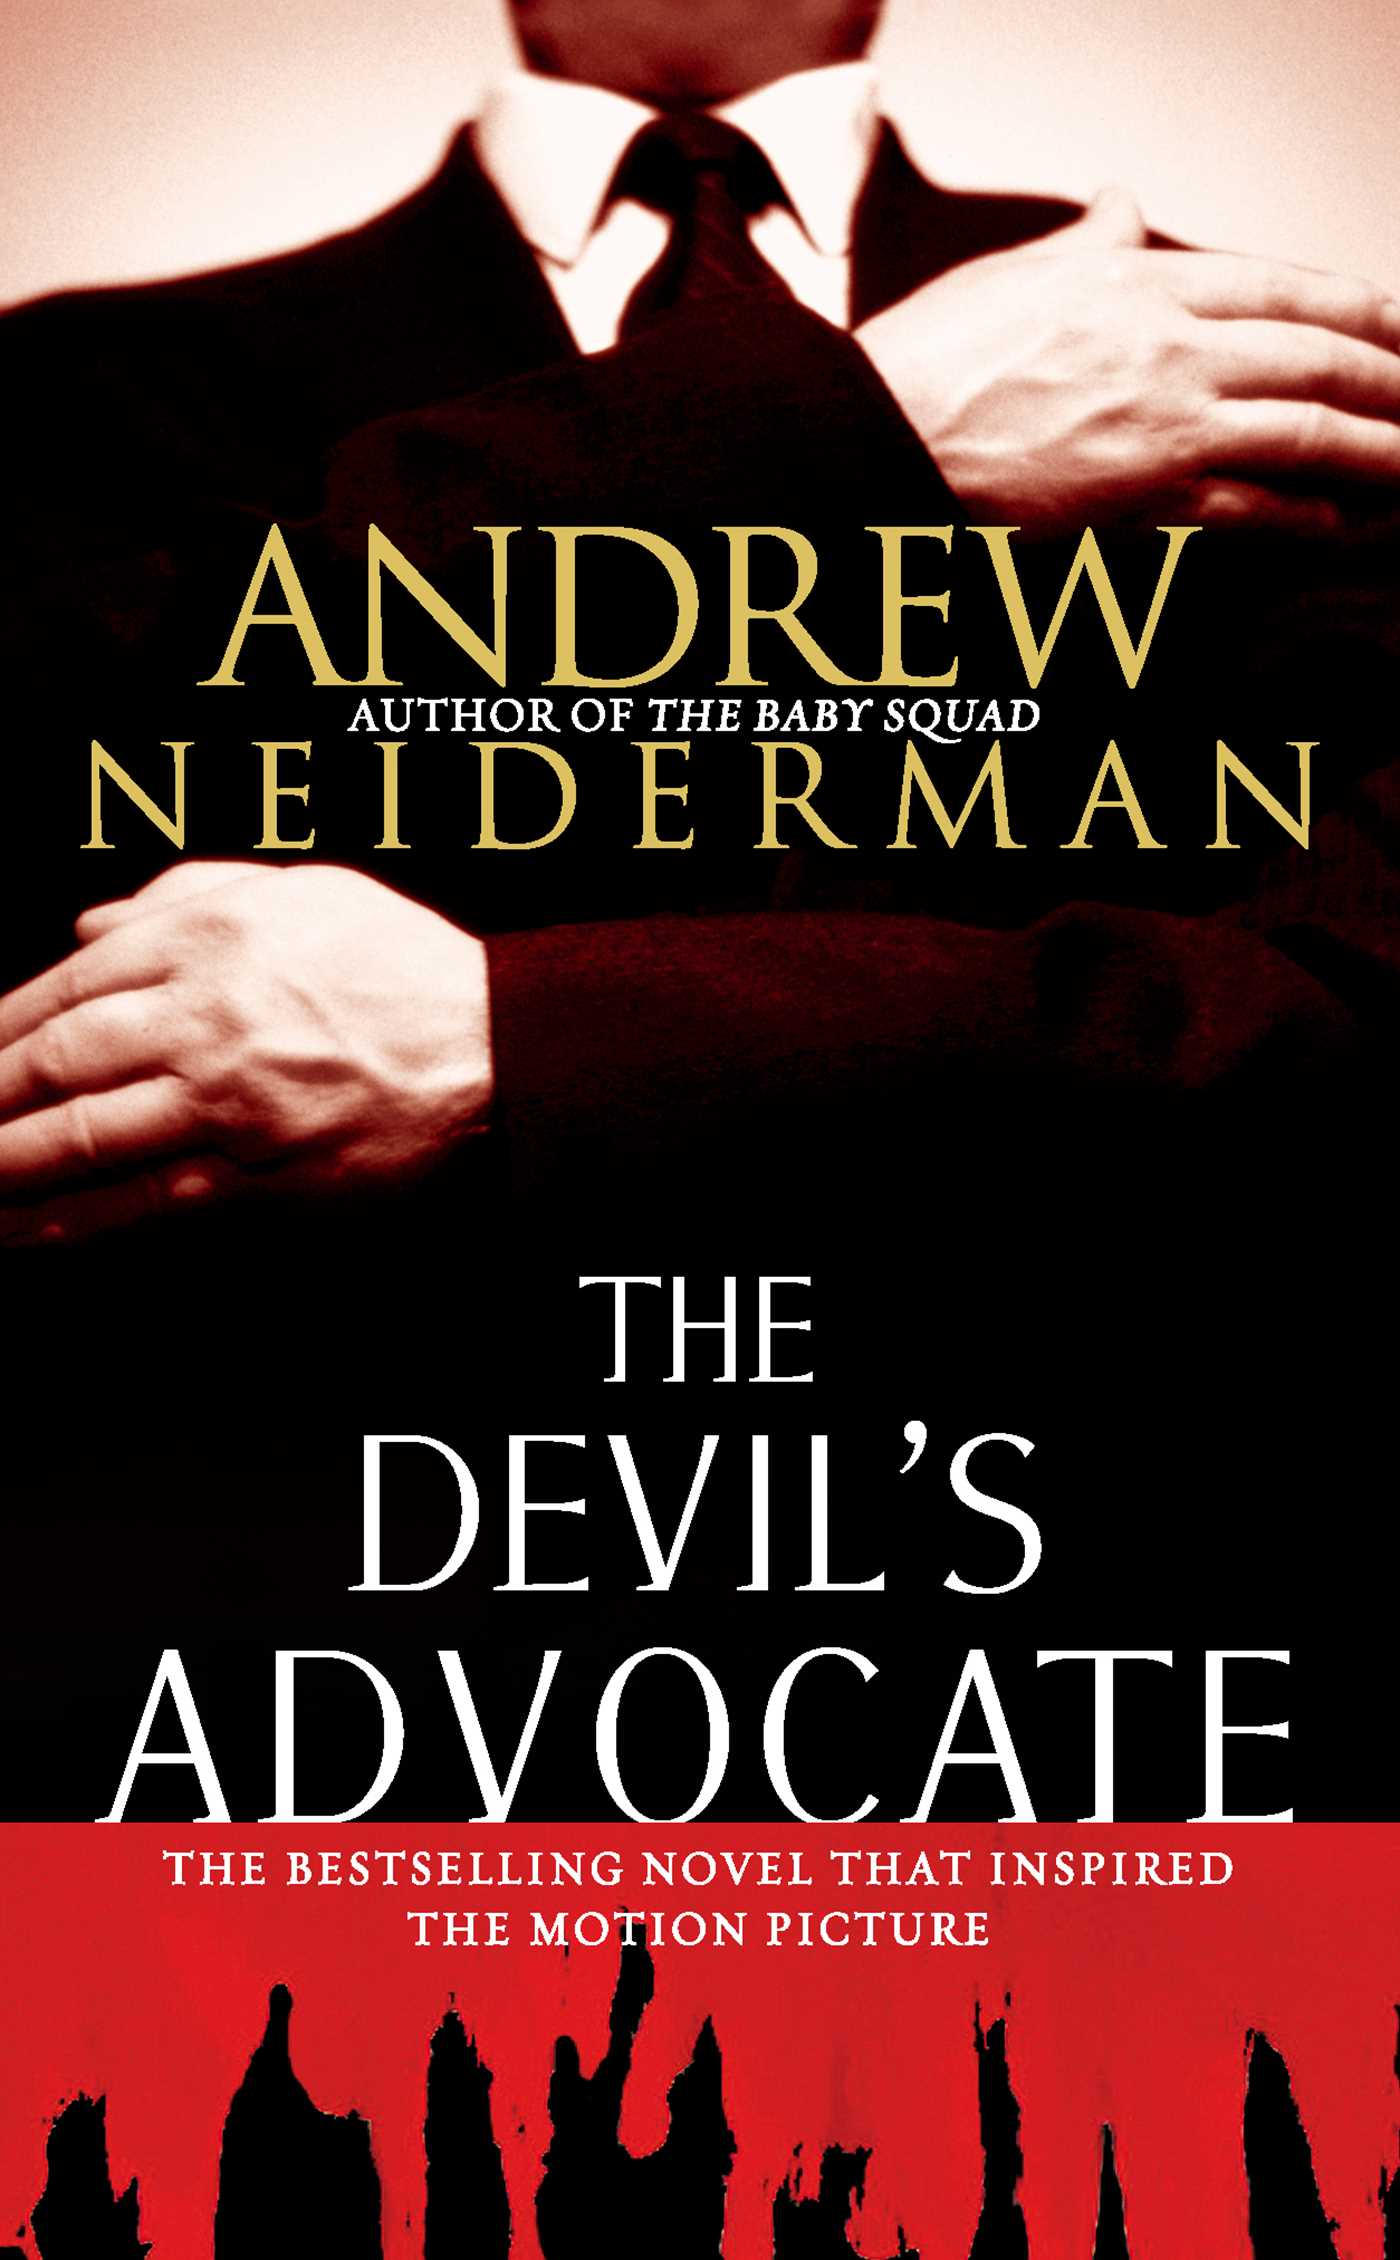 The-devils-advocate-9781451682557_hr